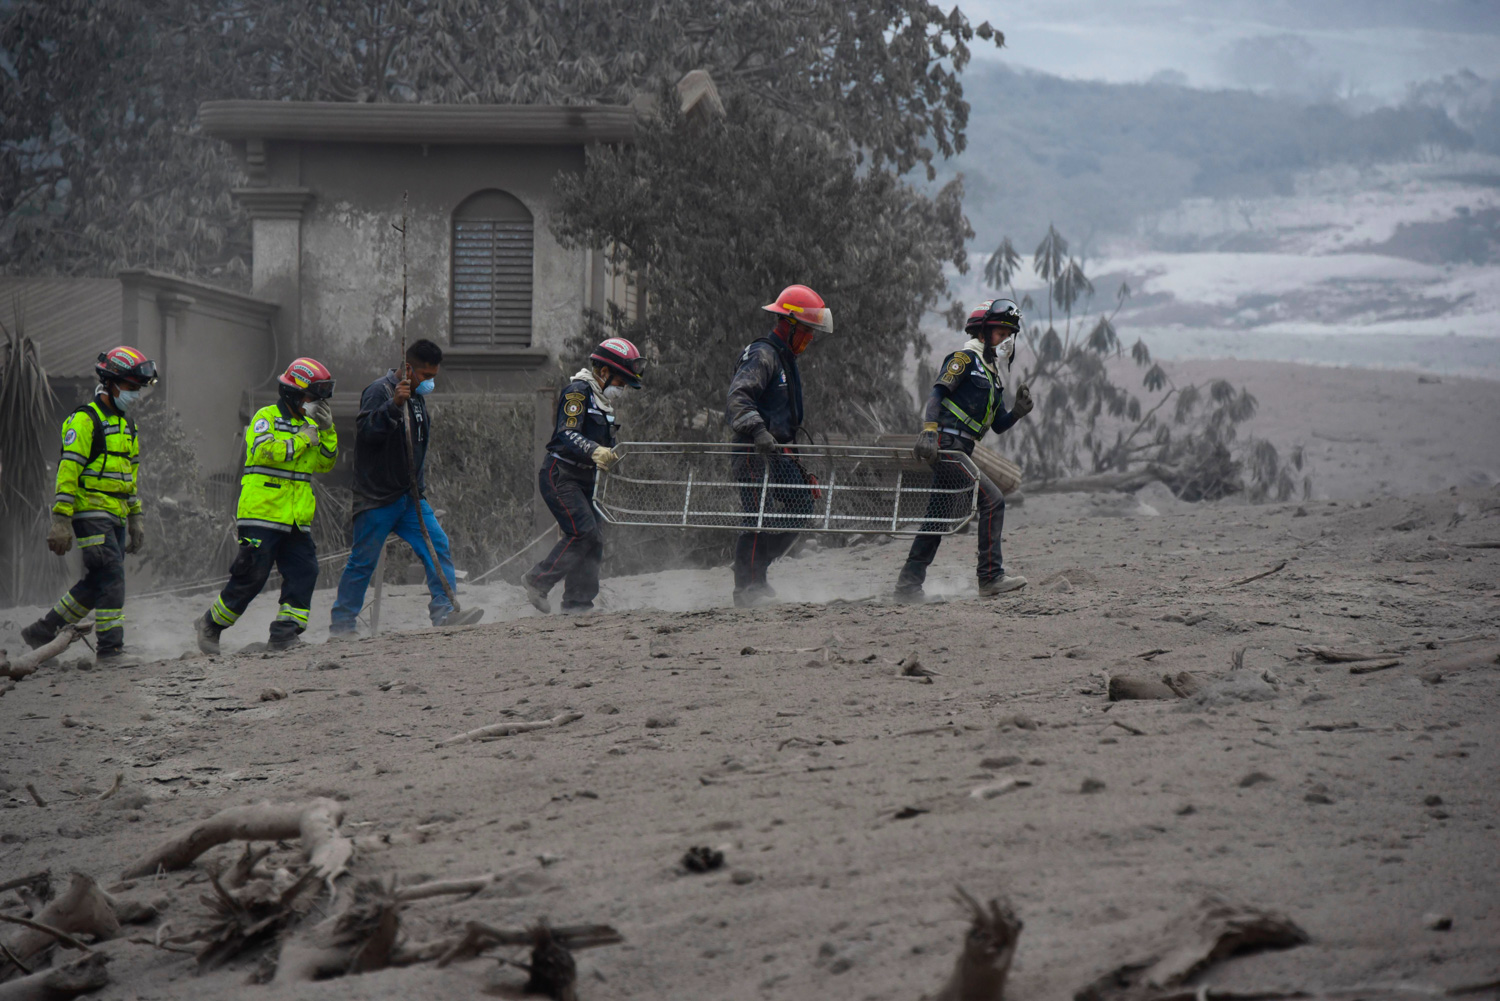 <div class='meta'><div class='origin-logo' data-origin='none'></div><span class='caption-text' data-credit='JOHAN ORDONEZ/AFP/Getty Images'>Rescuers search for victims in San Miguel Los Lotes, a village in Escuintla Department, about 35 km southwest of Guatemala City, on June 4, 2018, a day after the eruption.</span></div>